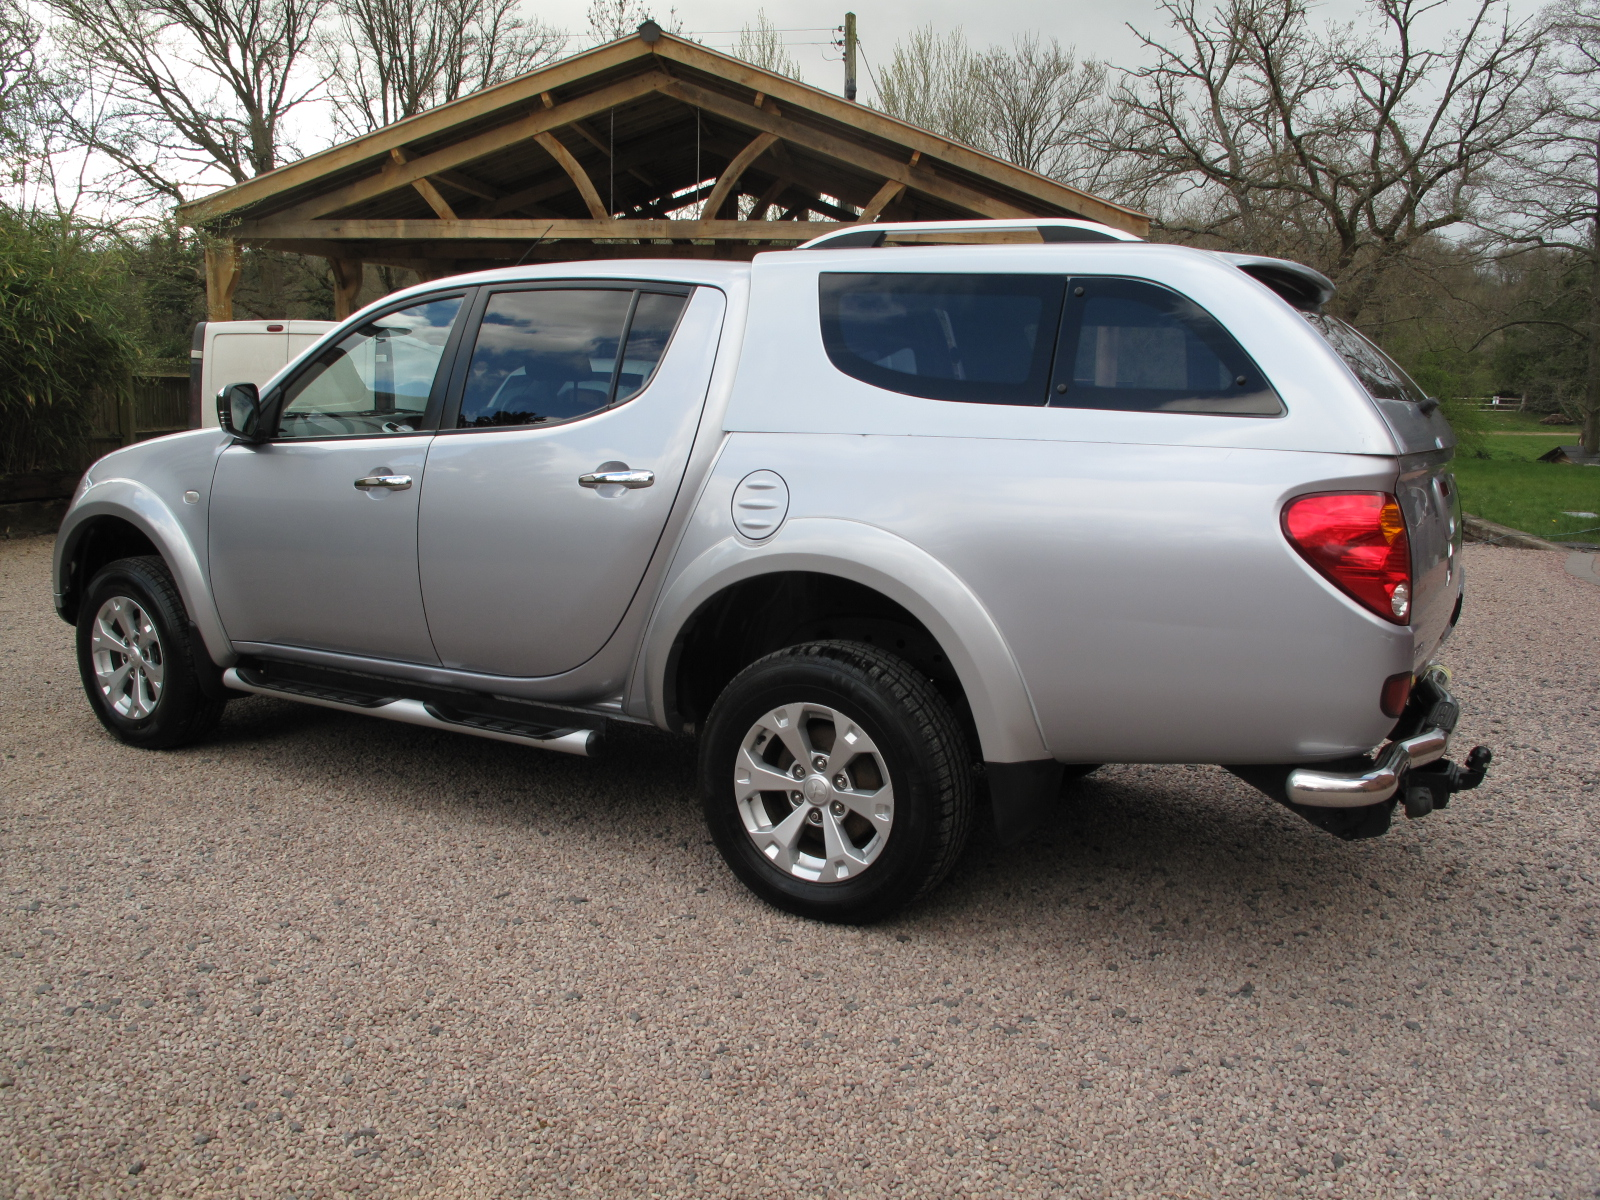 2014 14 Mitsubishi L200 2.5 DI-D CR Warrior 2 176 LB Double Cab Pickup 4WD ABSOLUTELY PRISTINE CONDITION THROUGHOUT! NO VAT! full